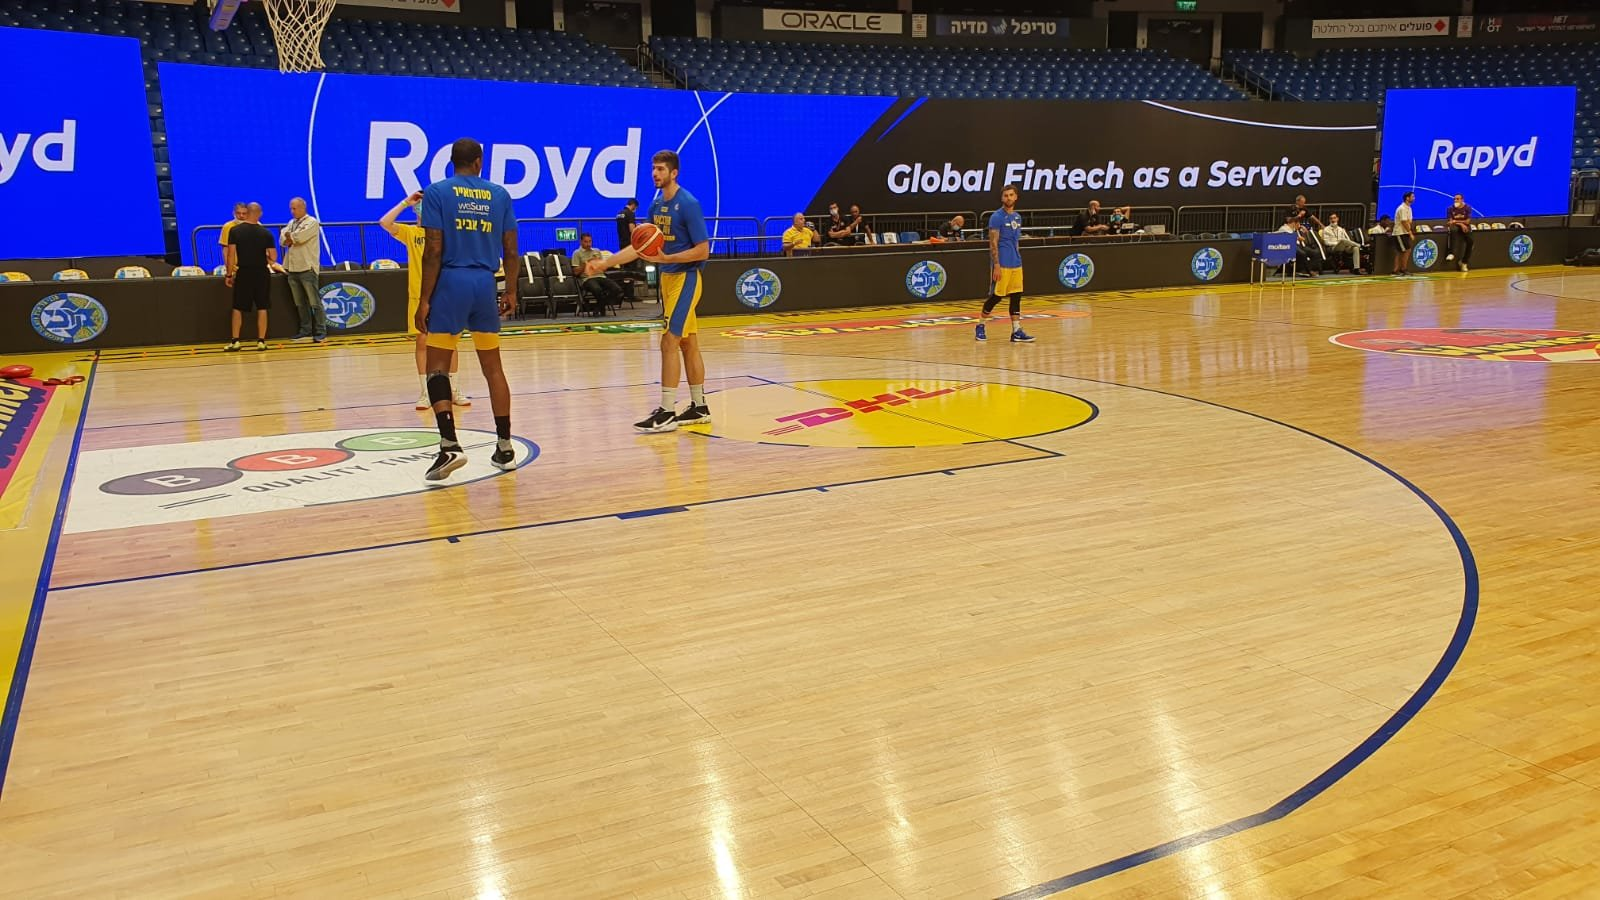 Rapyd featured on large screen at Maccabi FOX Tel Aviv game